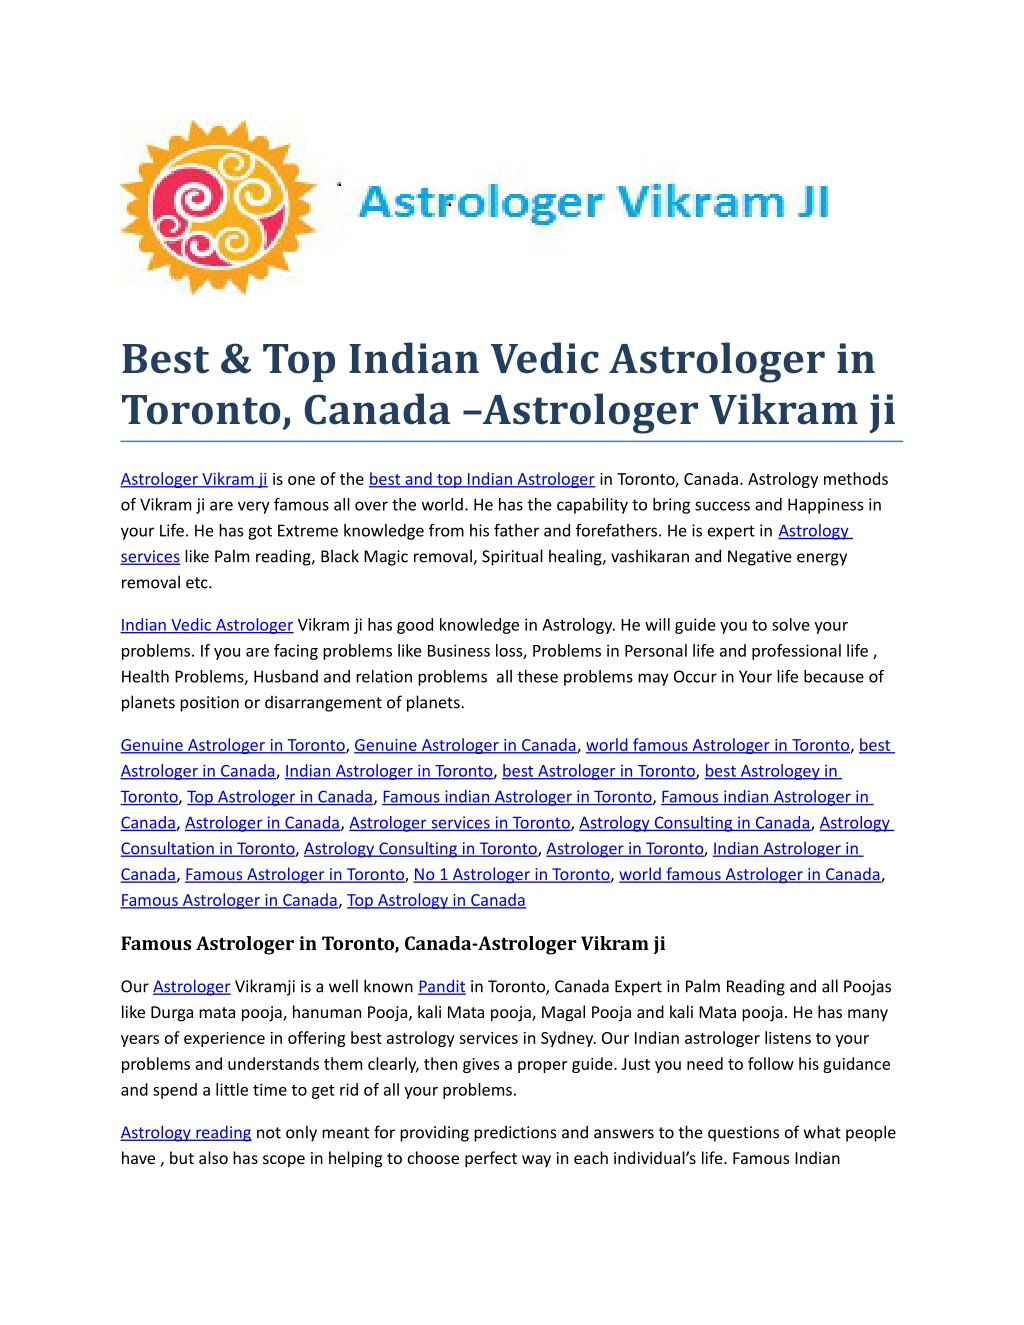 PPT - Best indian vedic Astrologer in Toronto, Canada